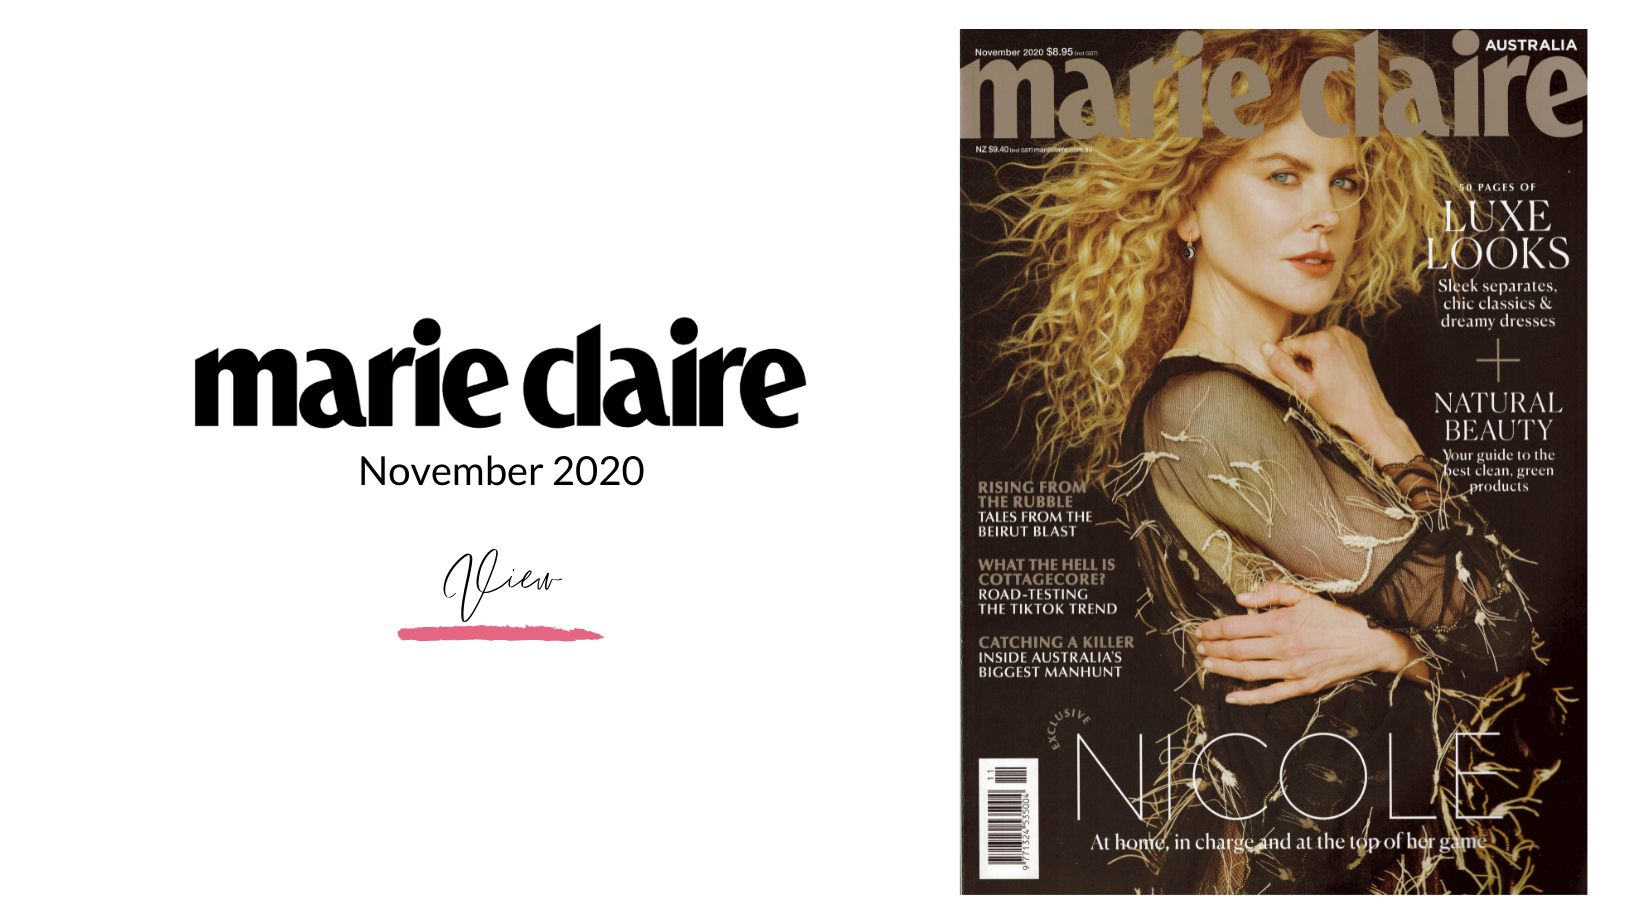 Cover of Marie Claire Magazine with Nicole Kidman on the cover dated November 2020